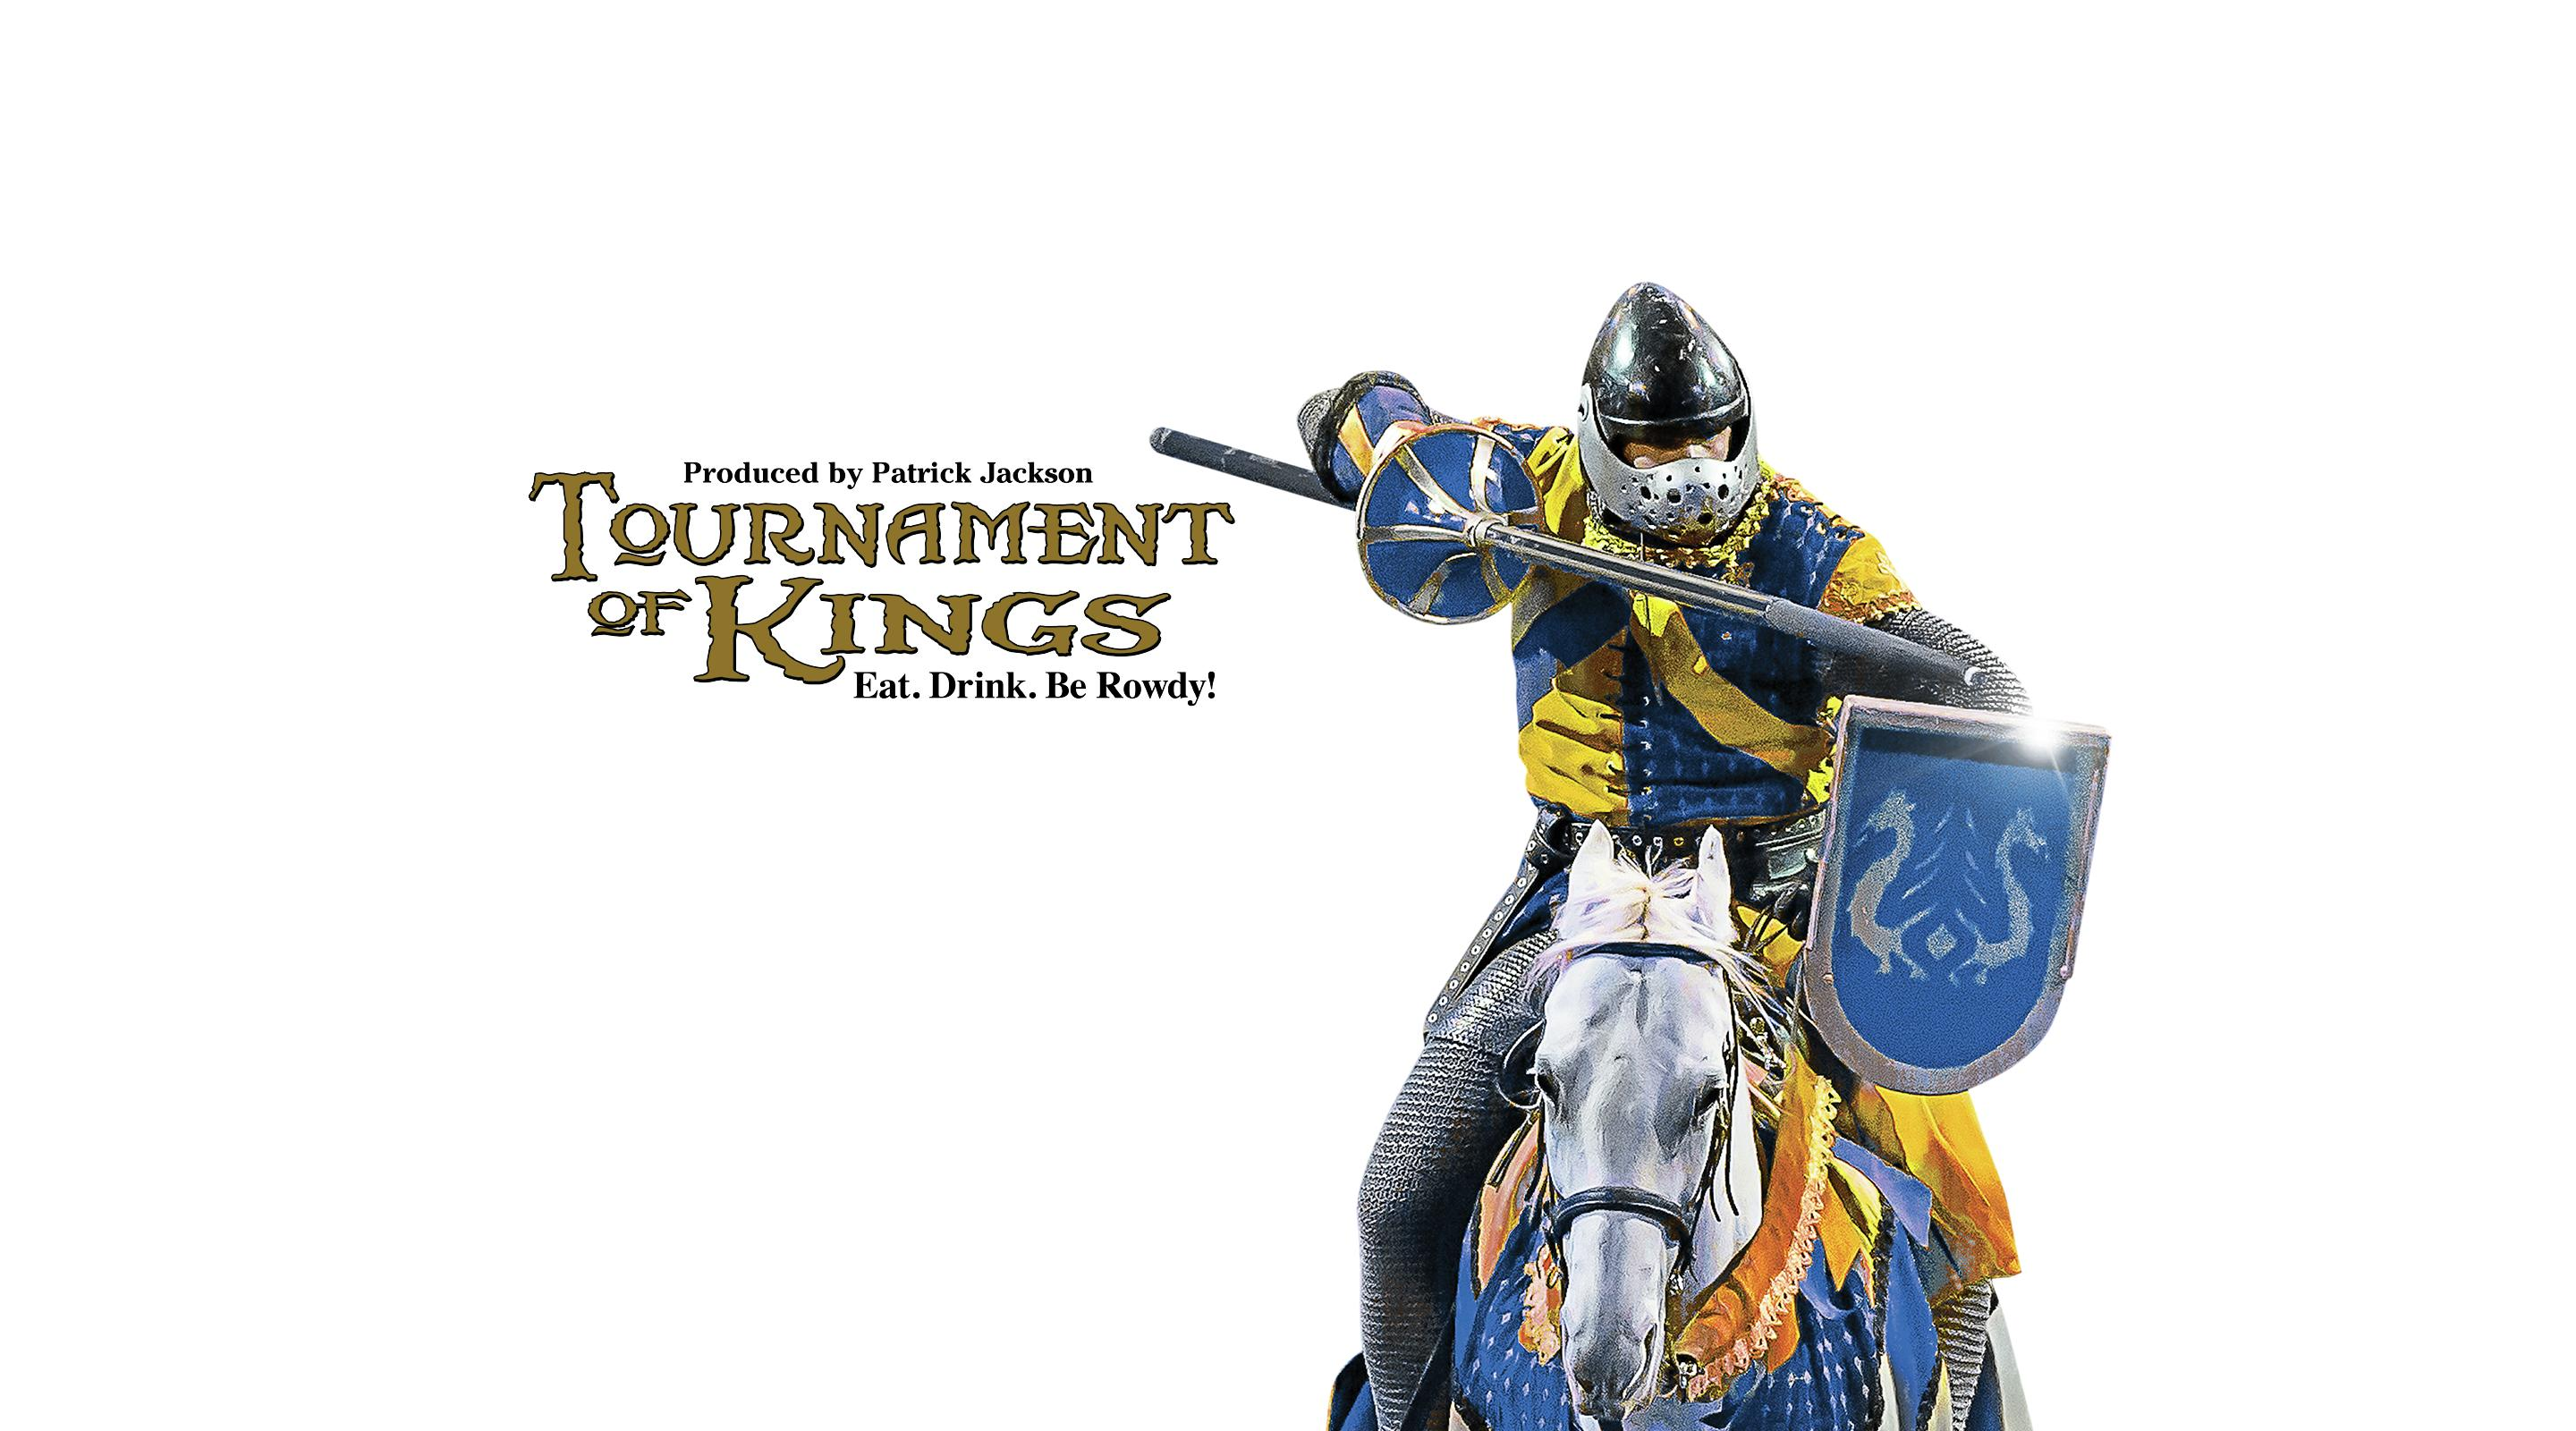 Tournament of Kings at the Excalibur Hotel, Las Vegas.